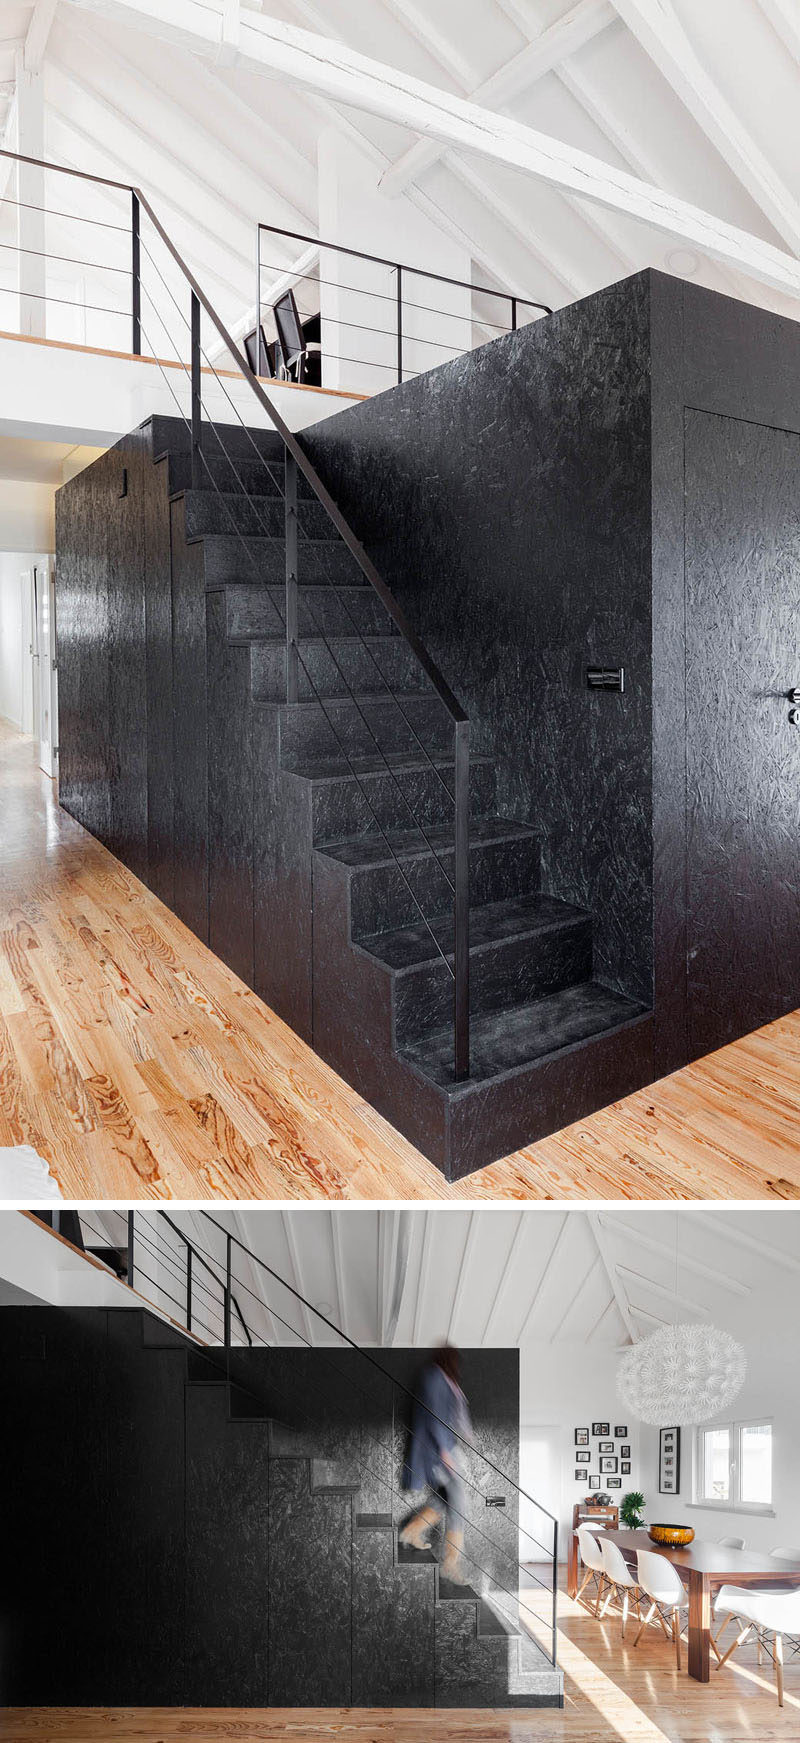 These black stairs attached to a black wooden box, feature hidden storage and lead up to the loft area of this converted barn.